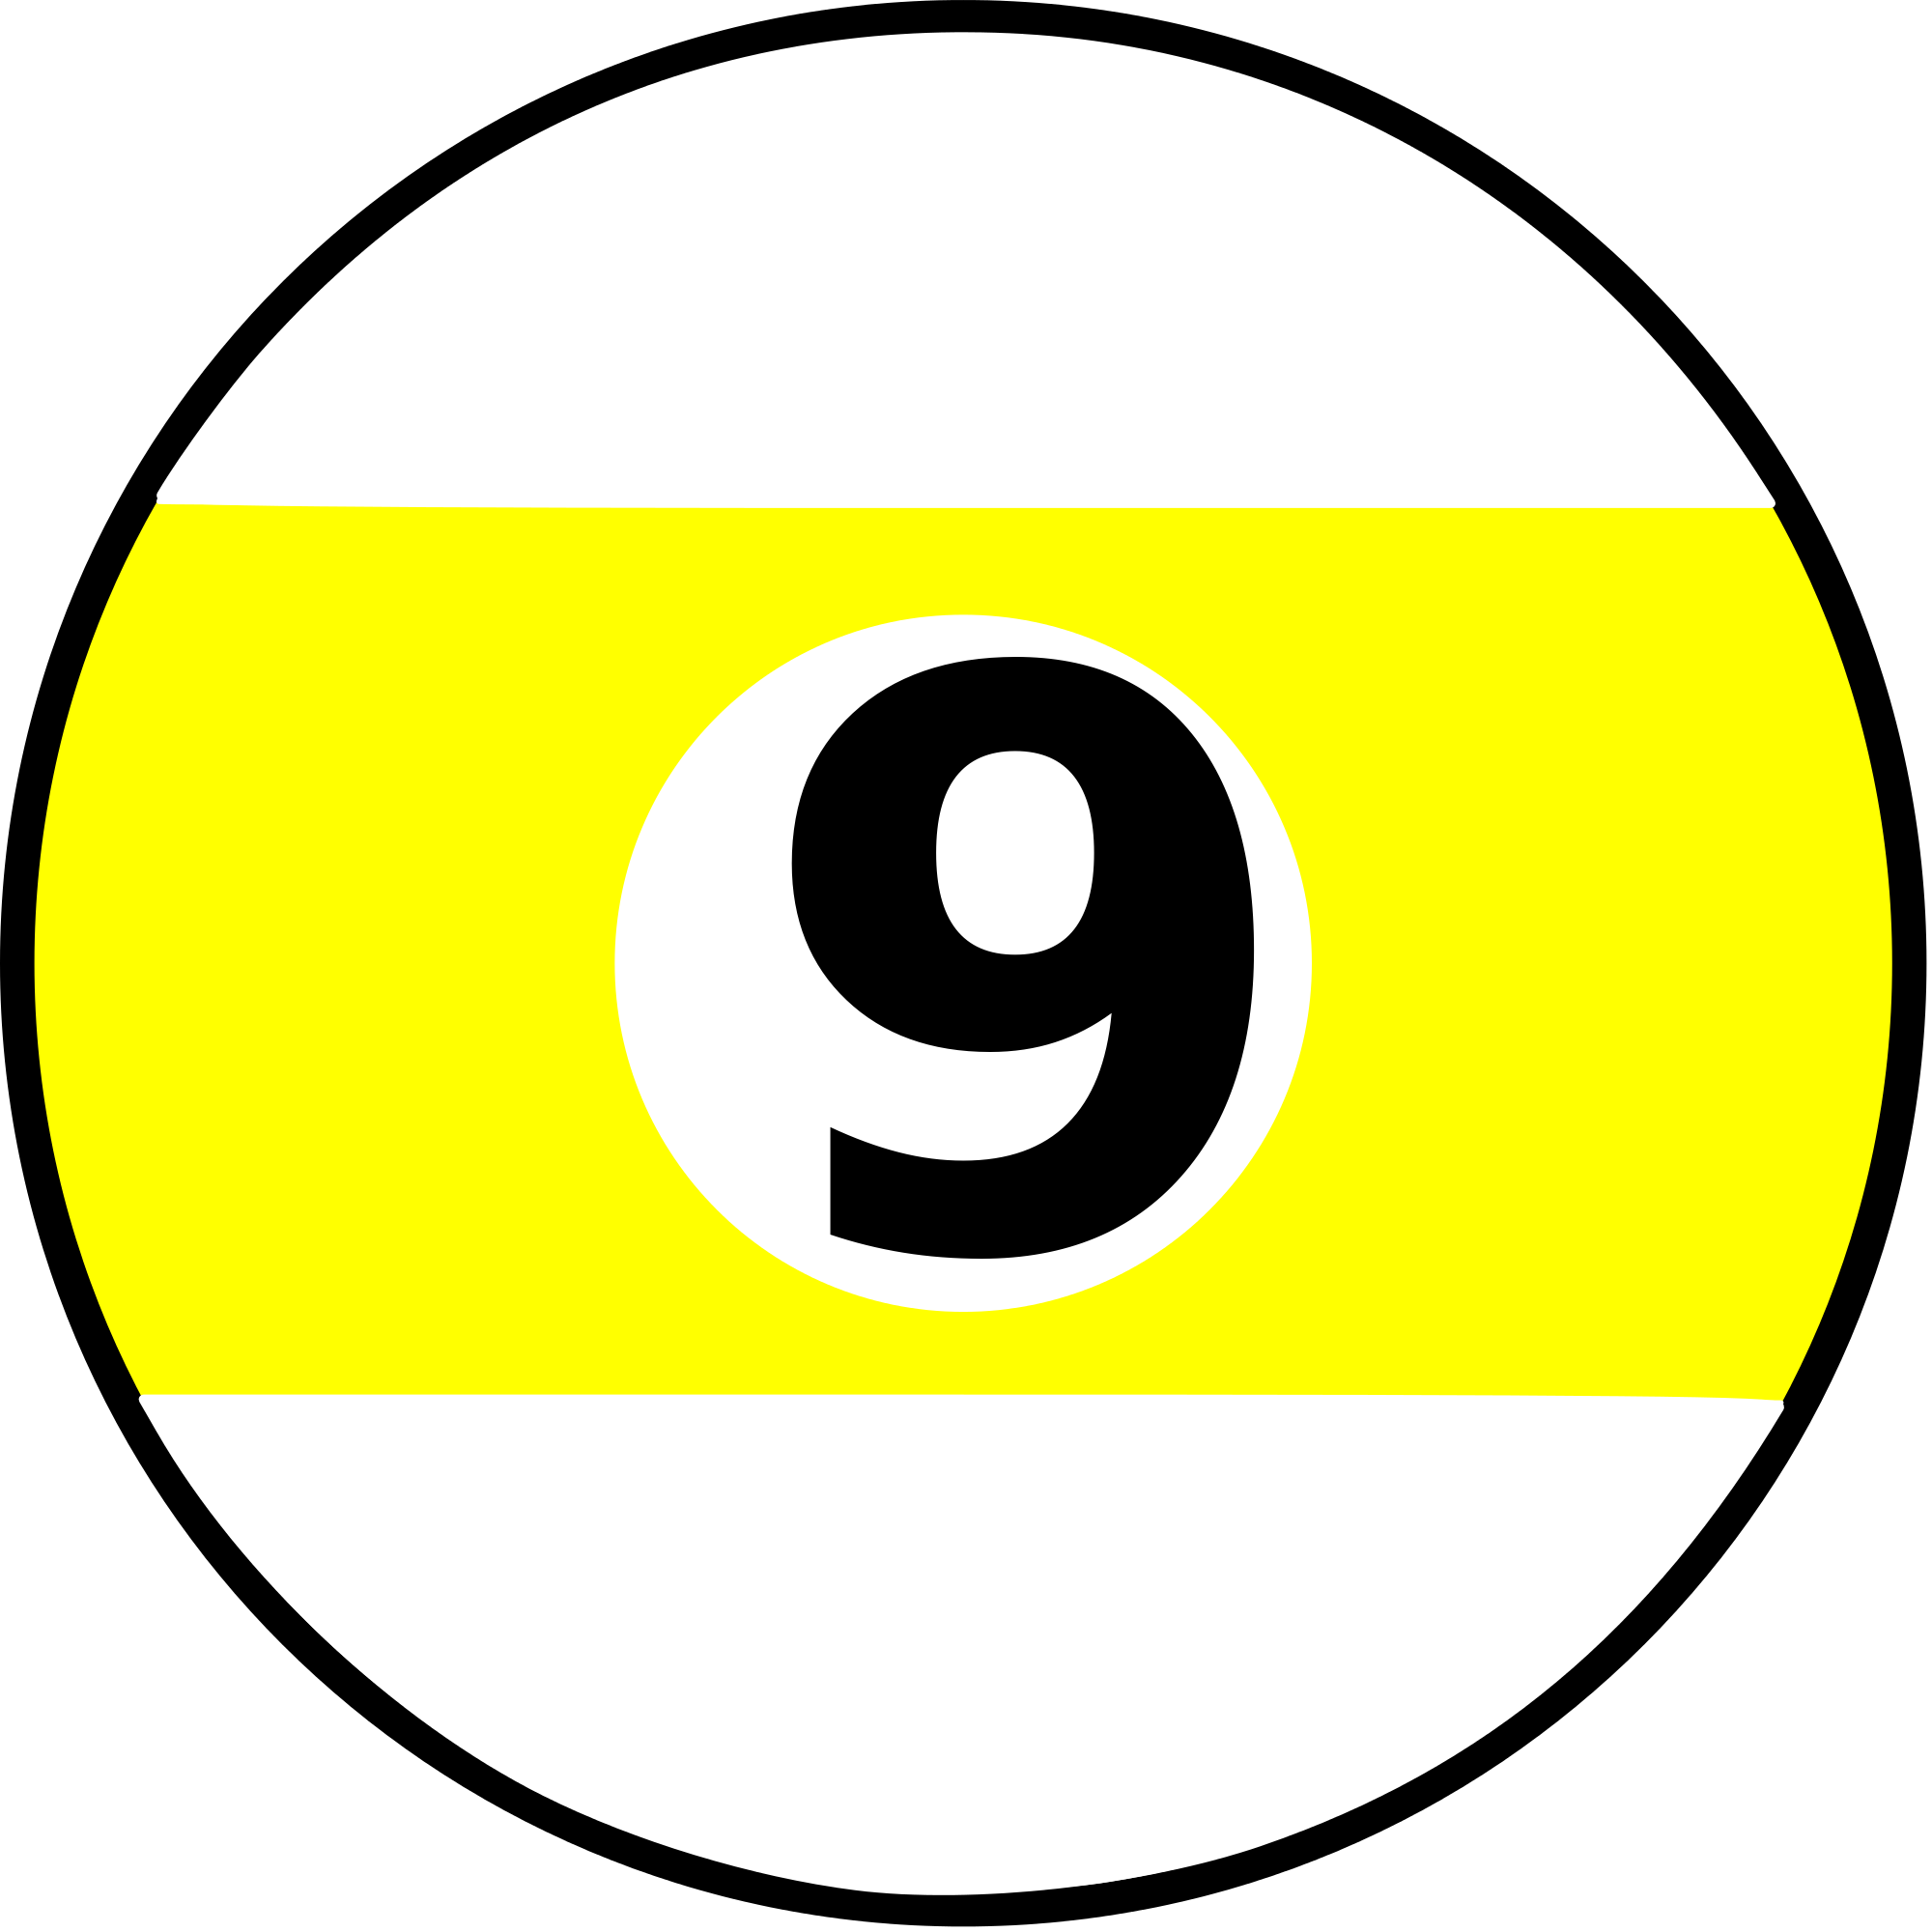 9 ball png. File svg wikimedia commons